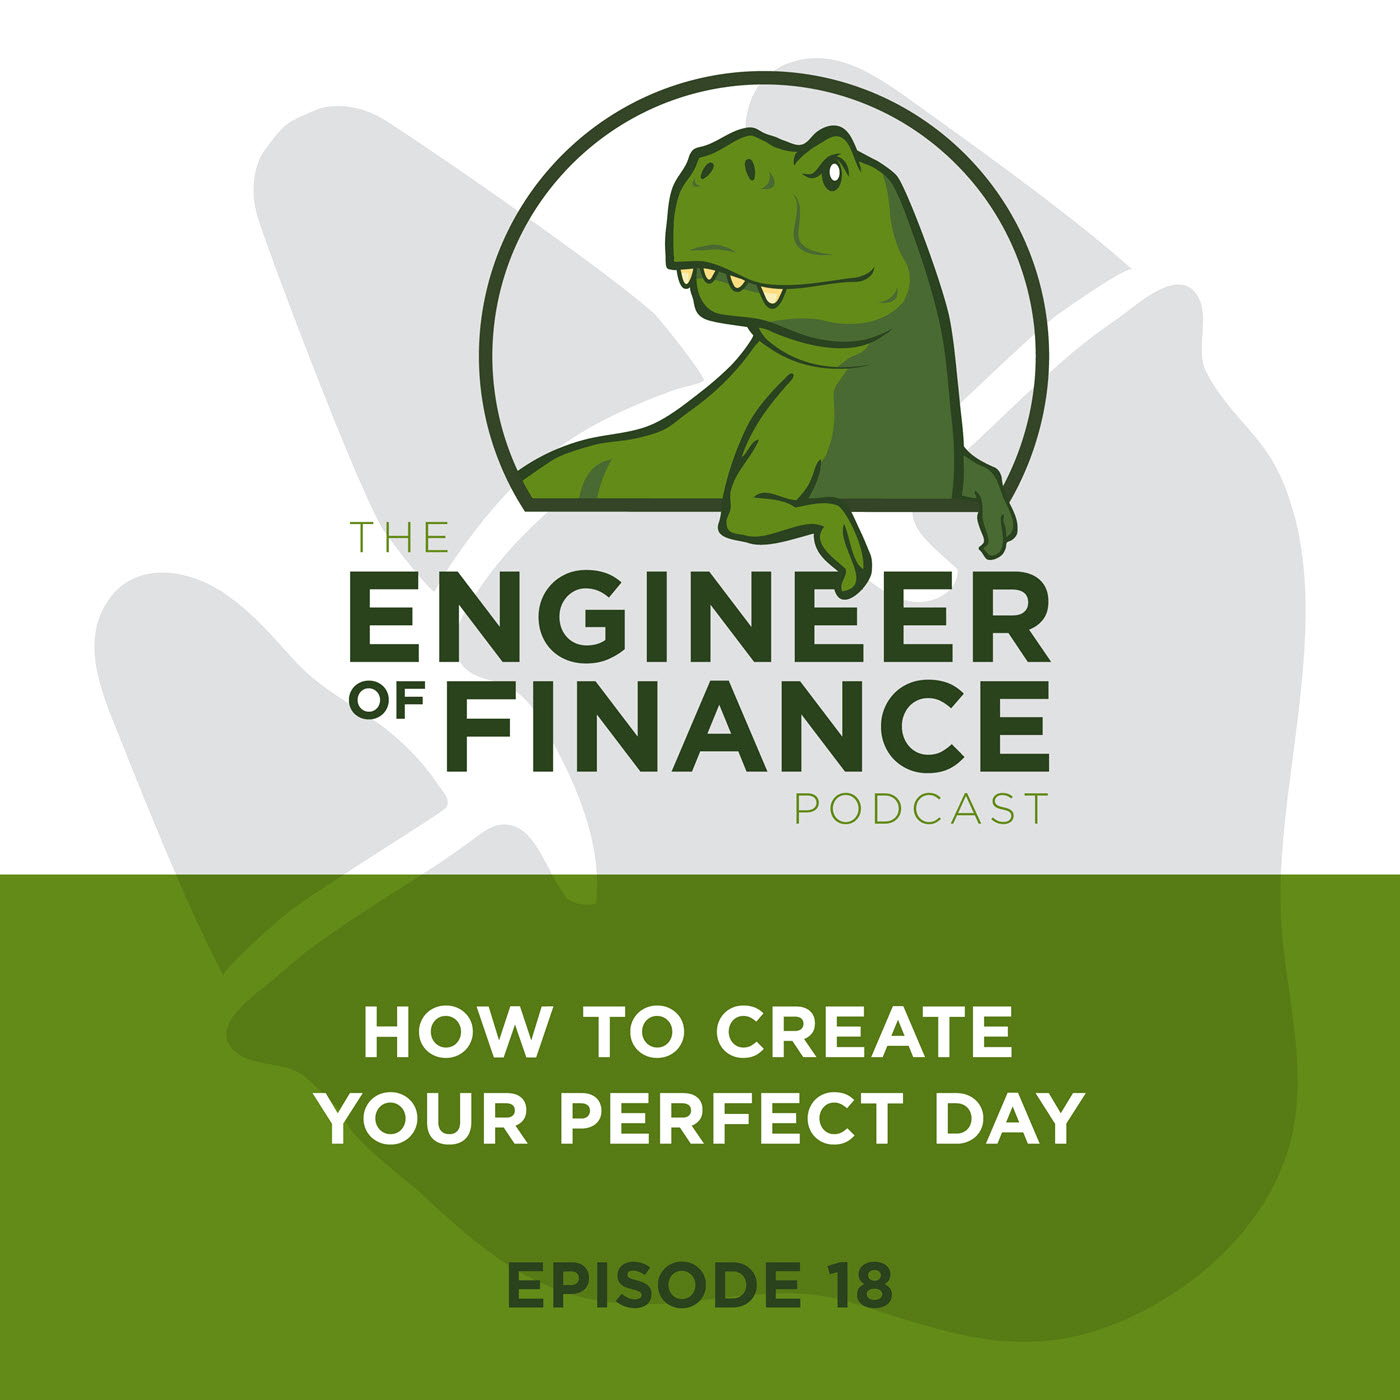 How To Create Your Perfect Day – Episode 18